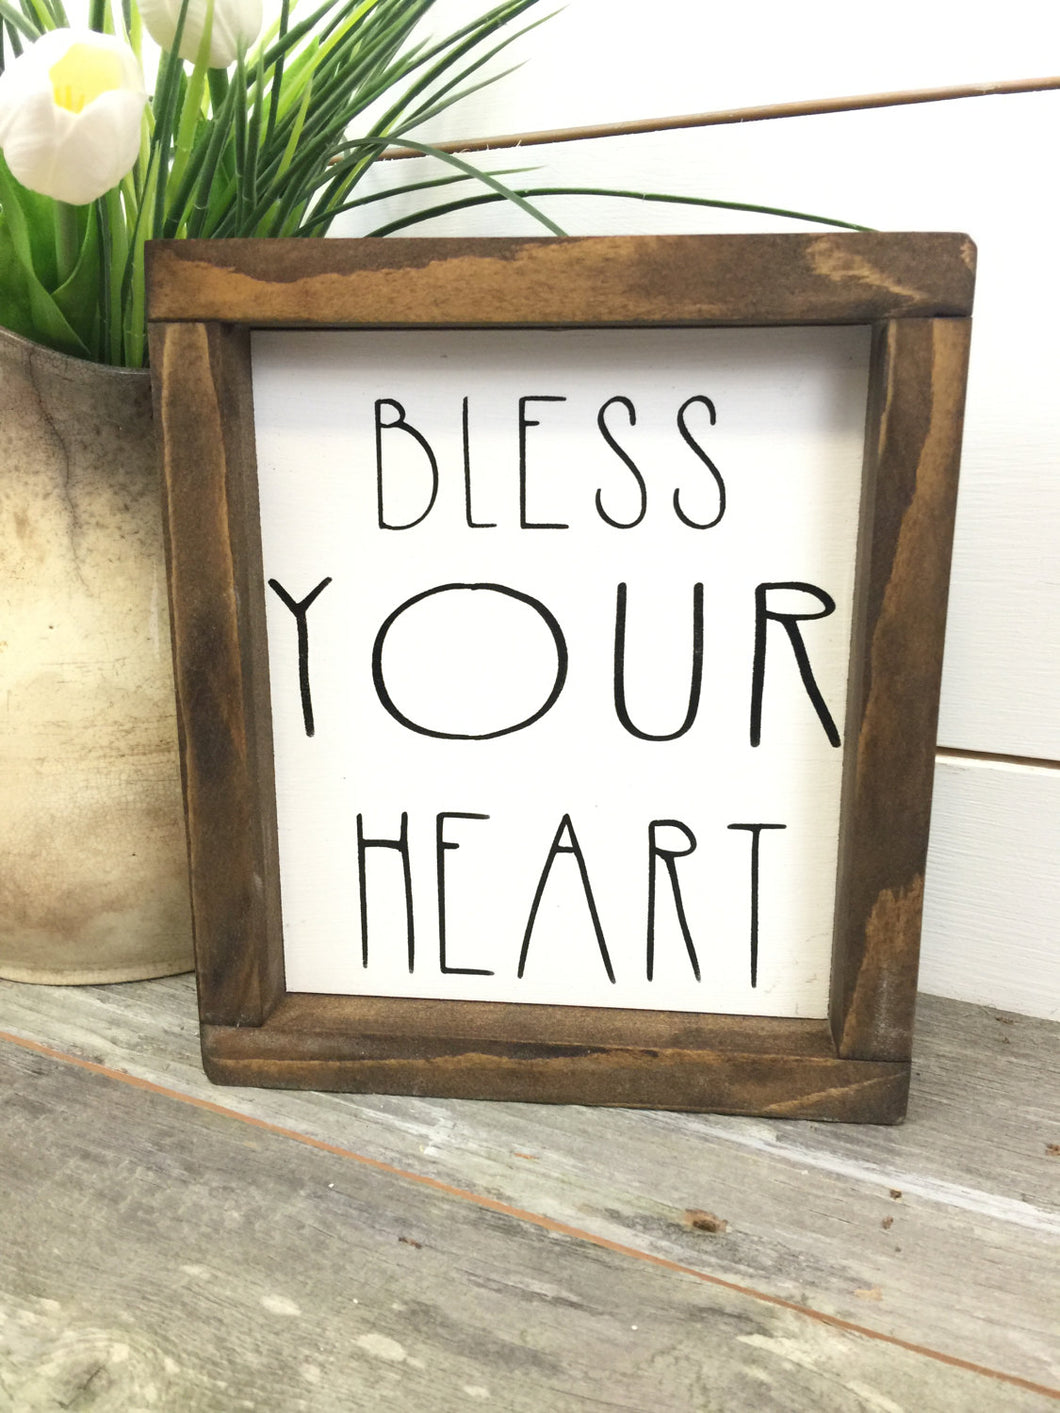 Bless Your Heart Wood Sign - Rustic Home Decor - Farmhouse sign - Farmhouse Decor - Rustic Wood Sign - Wood Wall Hanging - Cottage Sign